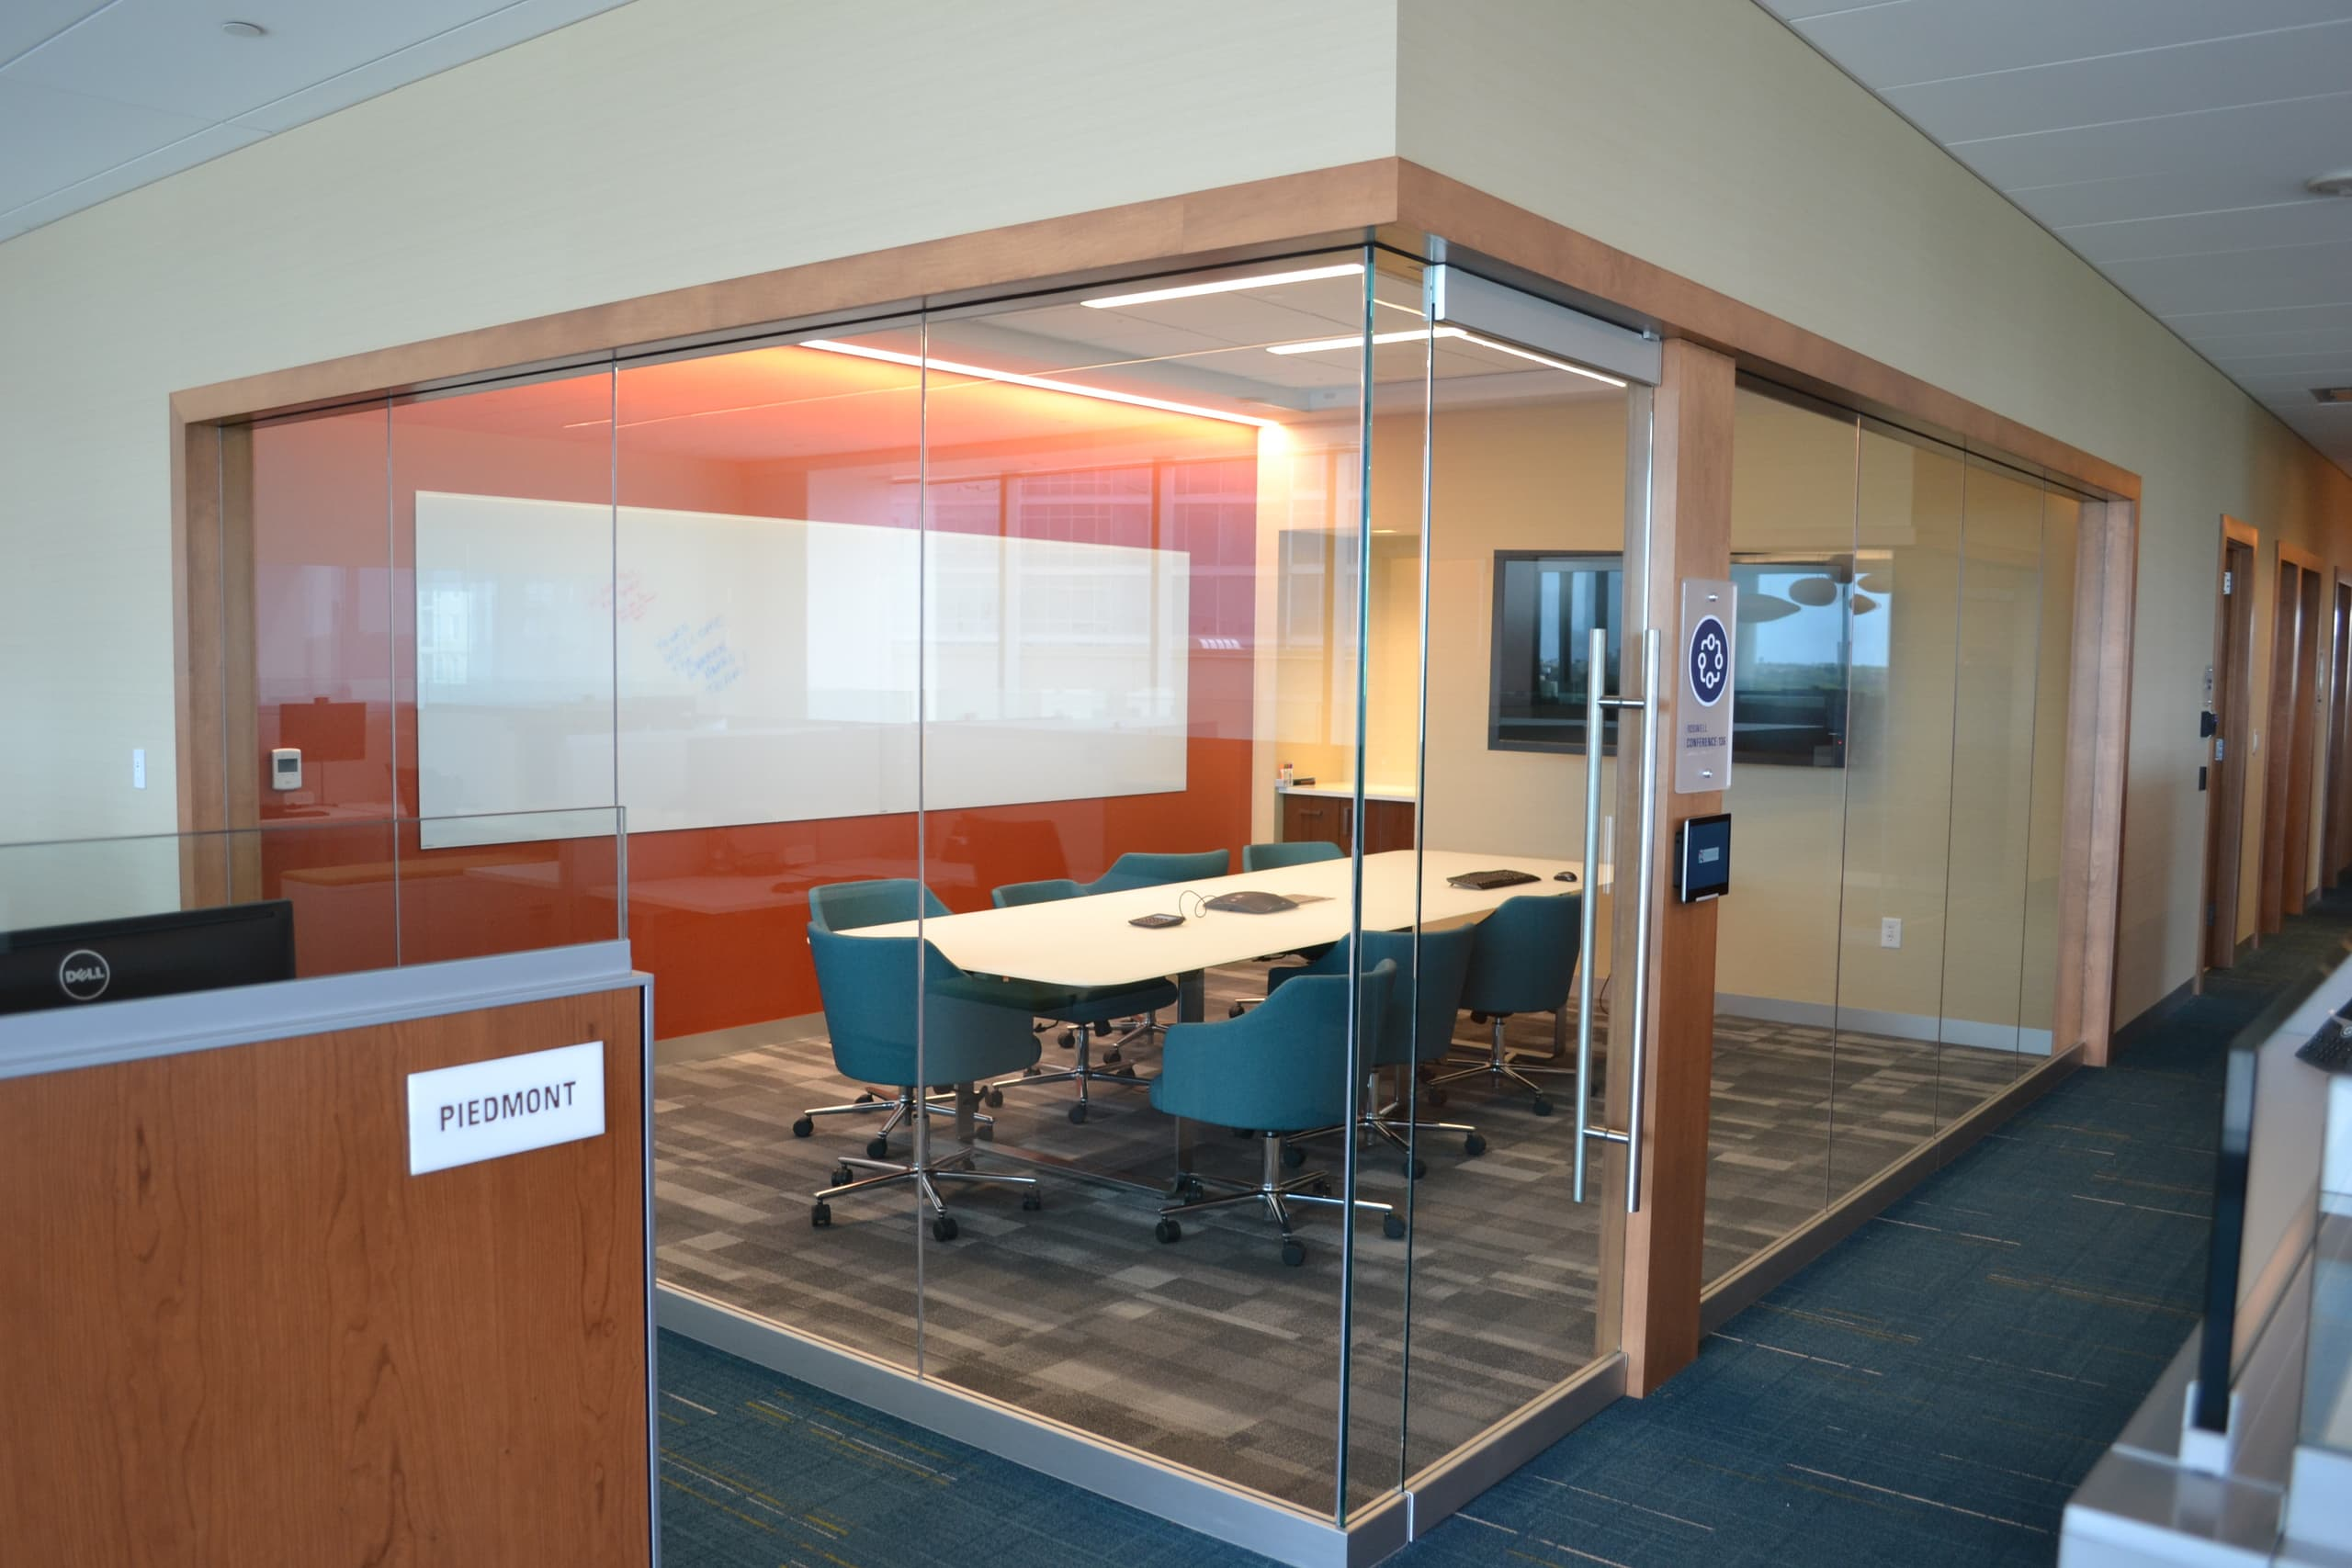 Financial Services Company Workplace Transformation Pilot Conference Room by Michael Graves